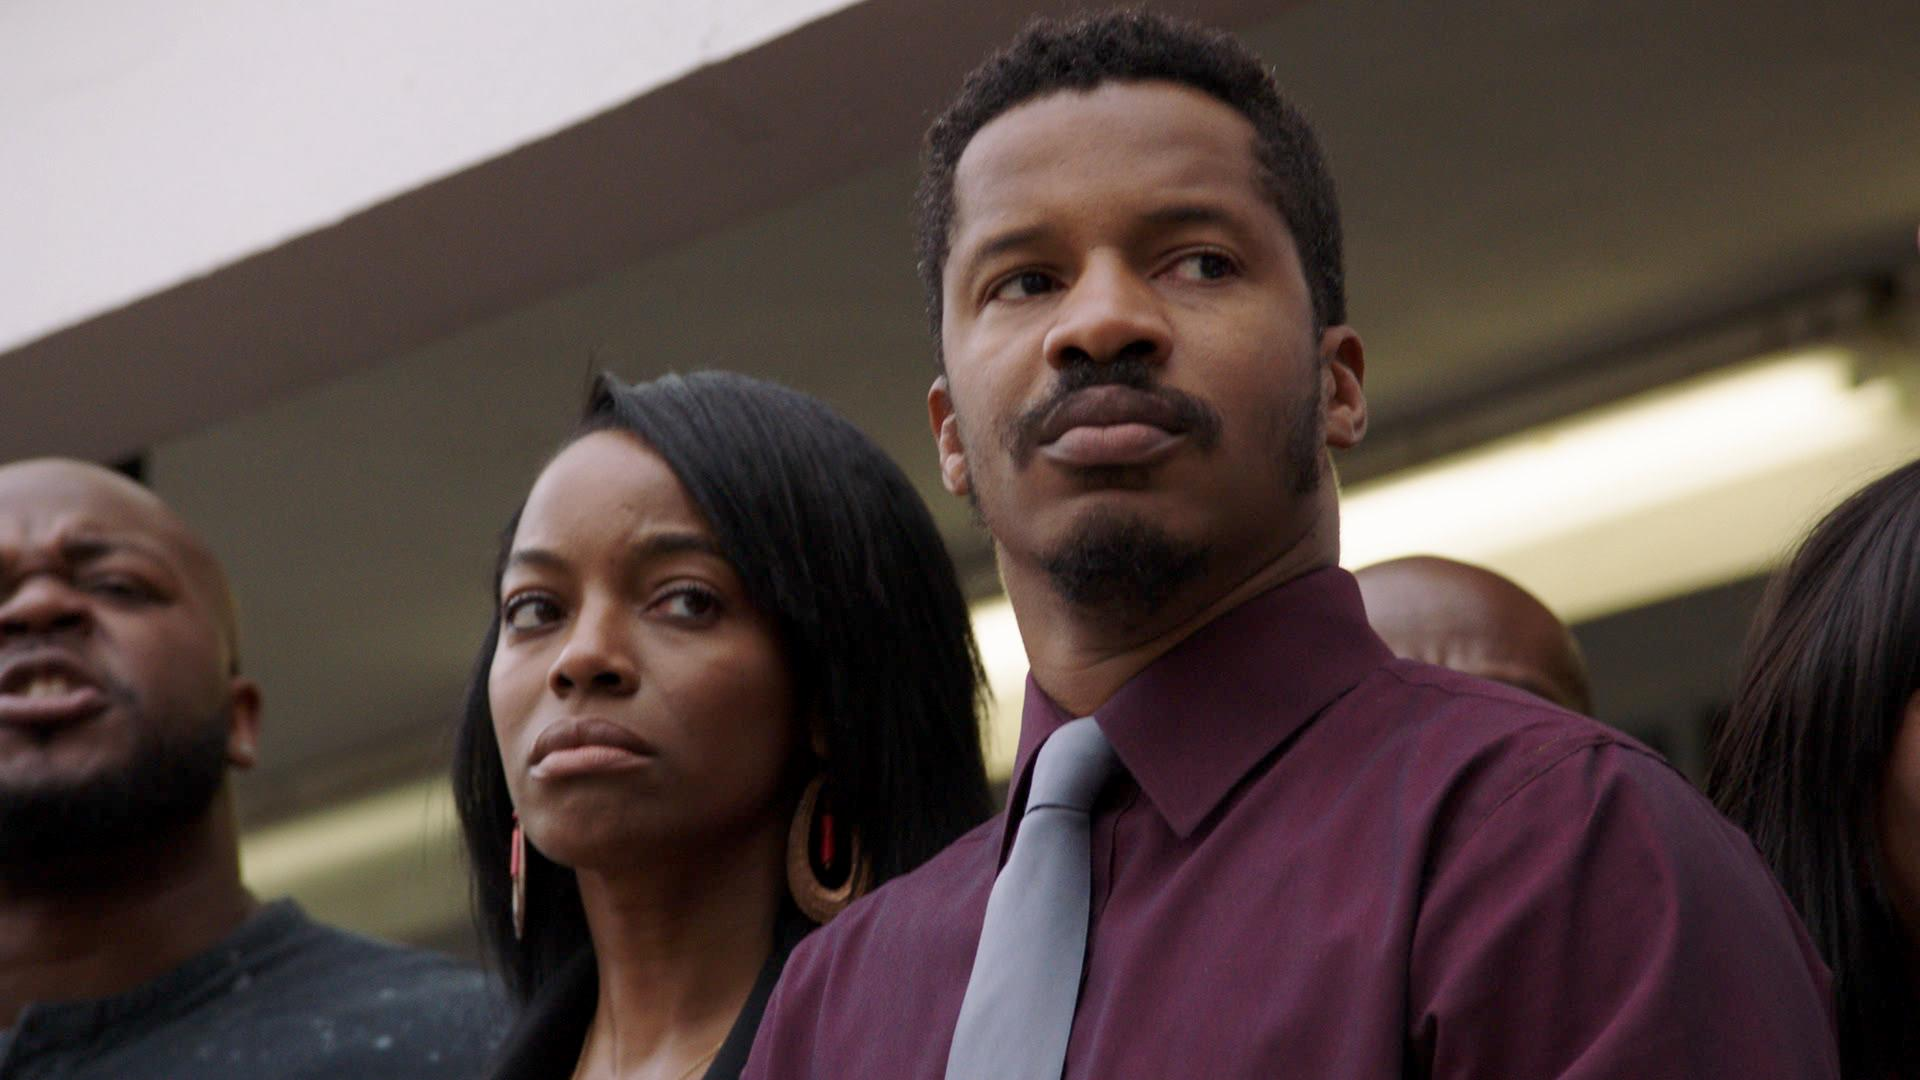 Milauna Jackson and Nate Parker in American Skin (2019)